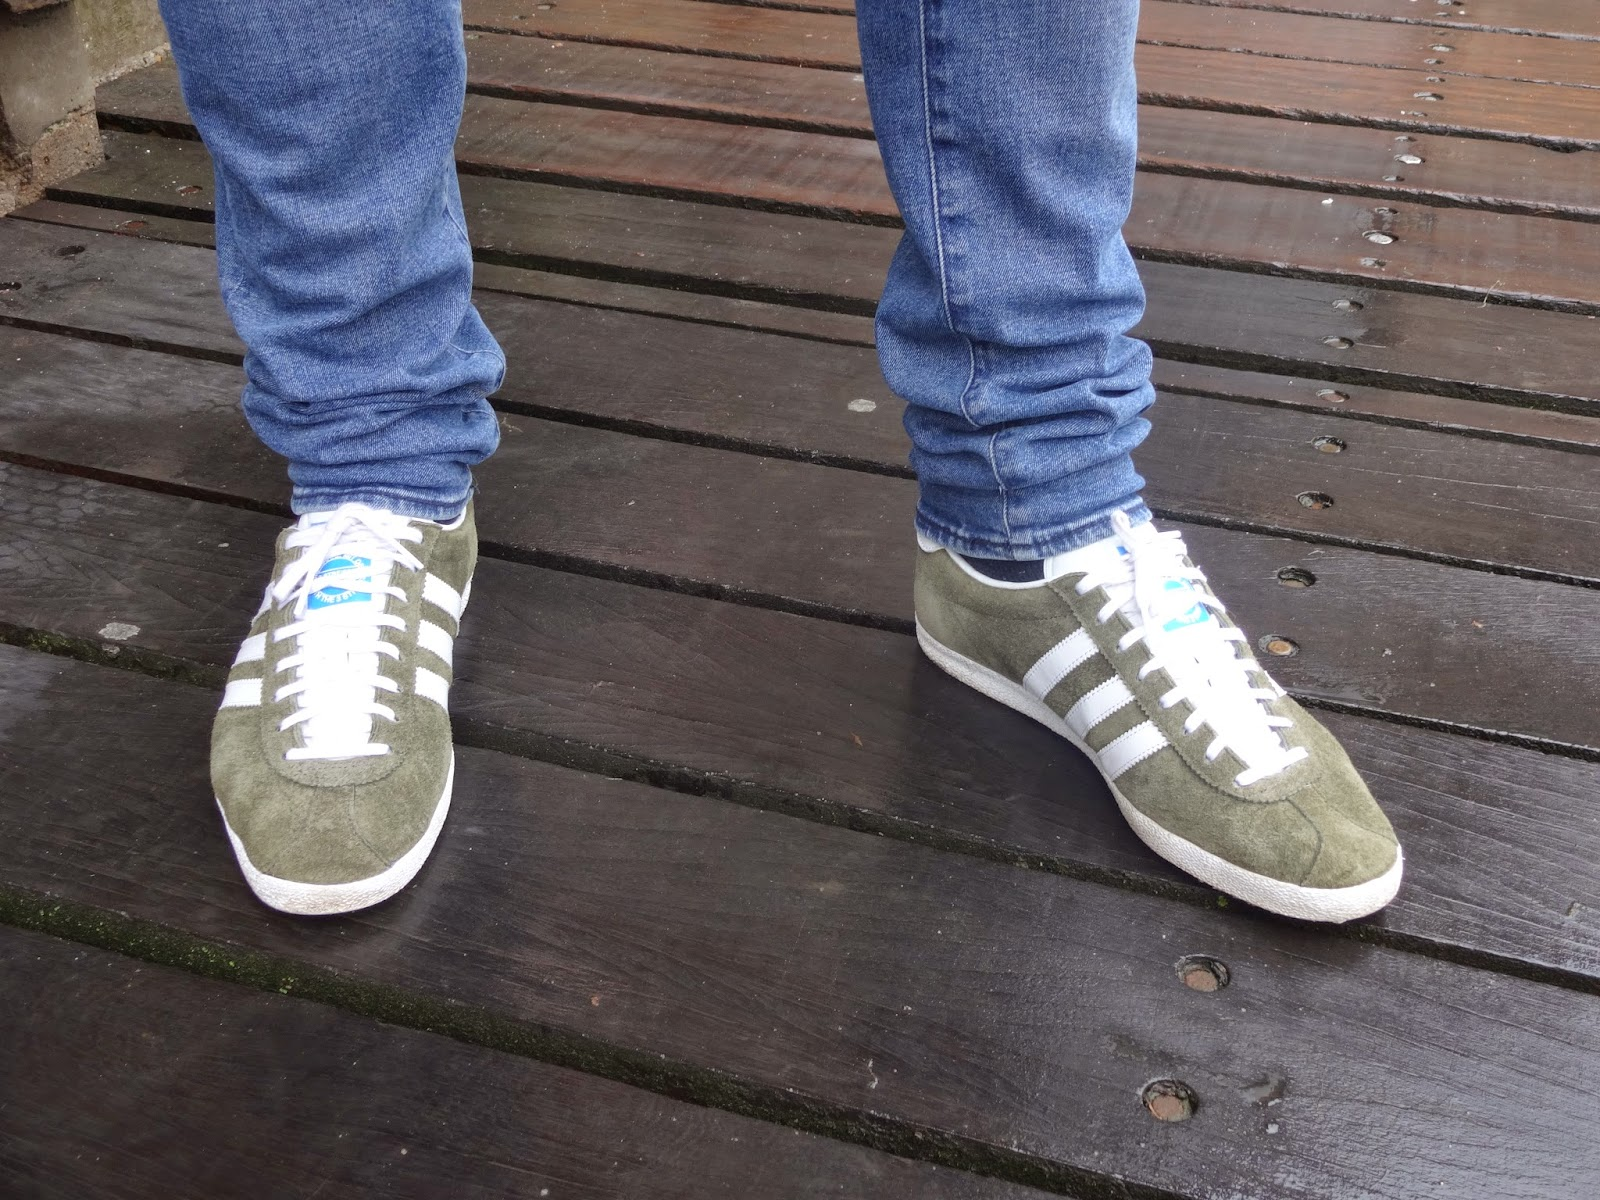 sxzjl On My Feet Today: Adidas Gazelle Og Tent Green/White